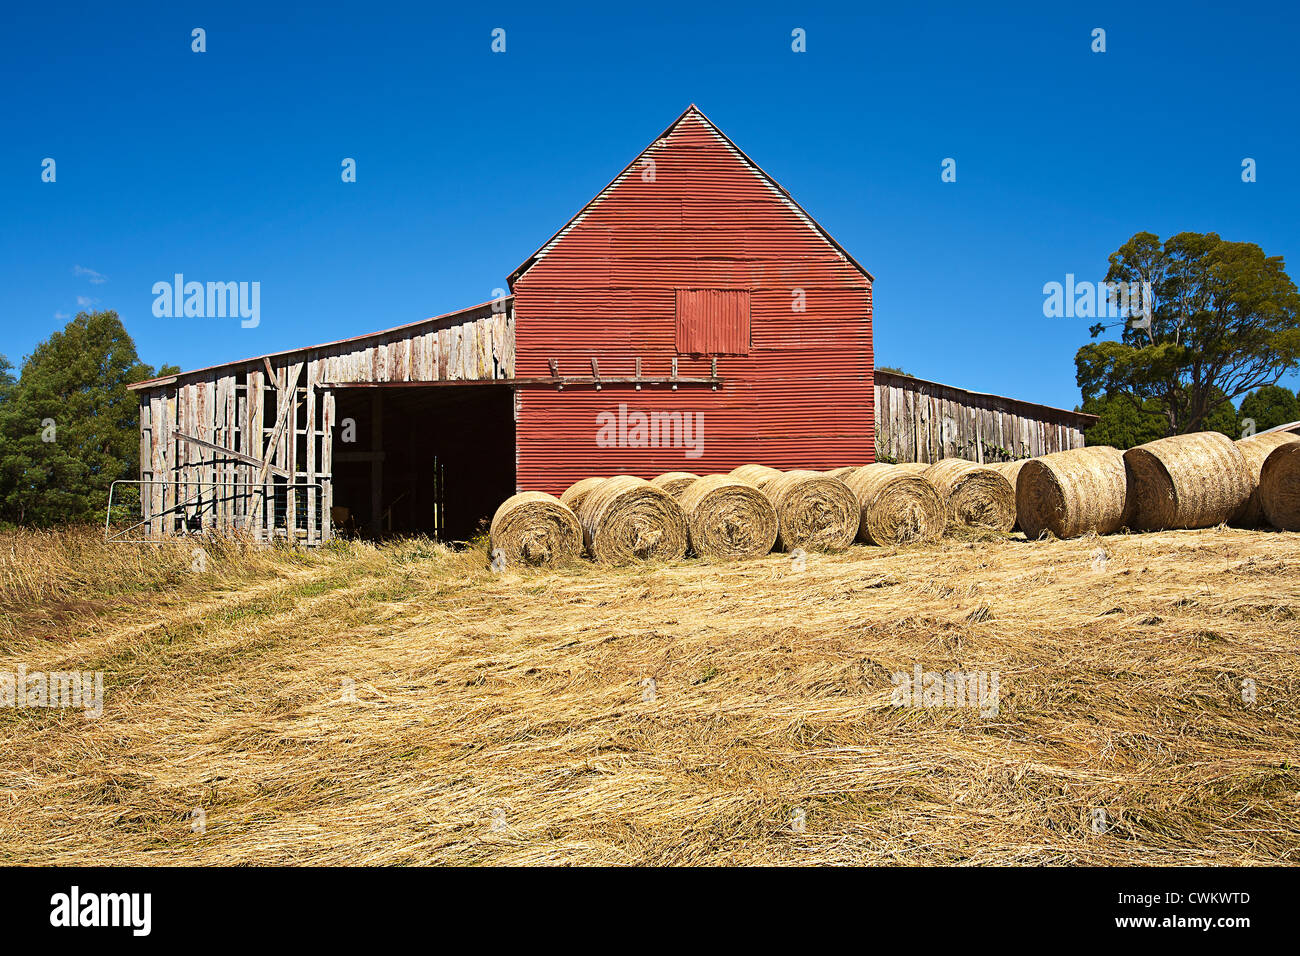 Hay bales and old barn Victoria Australia Stock Photo